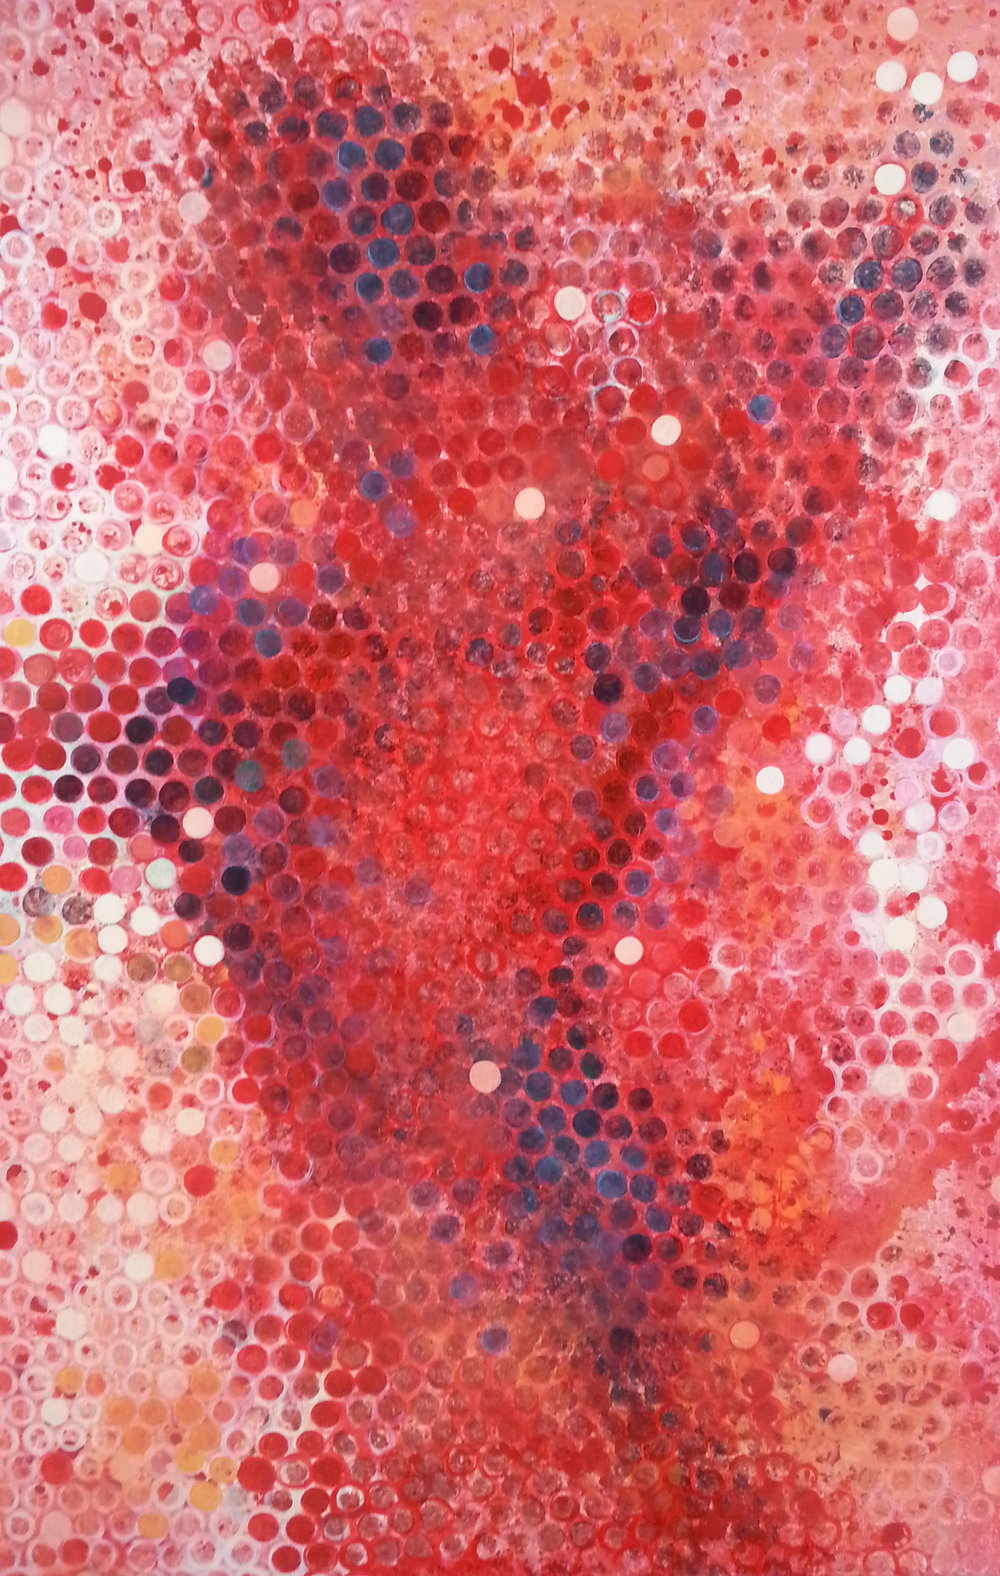 Movement in Red, 2012  60 x 40 inches